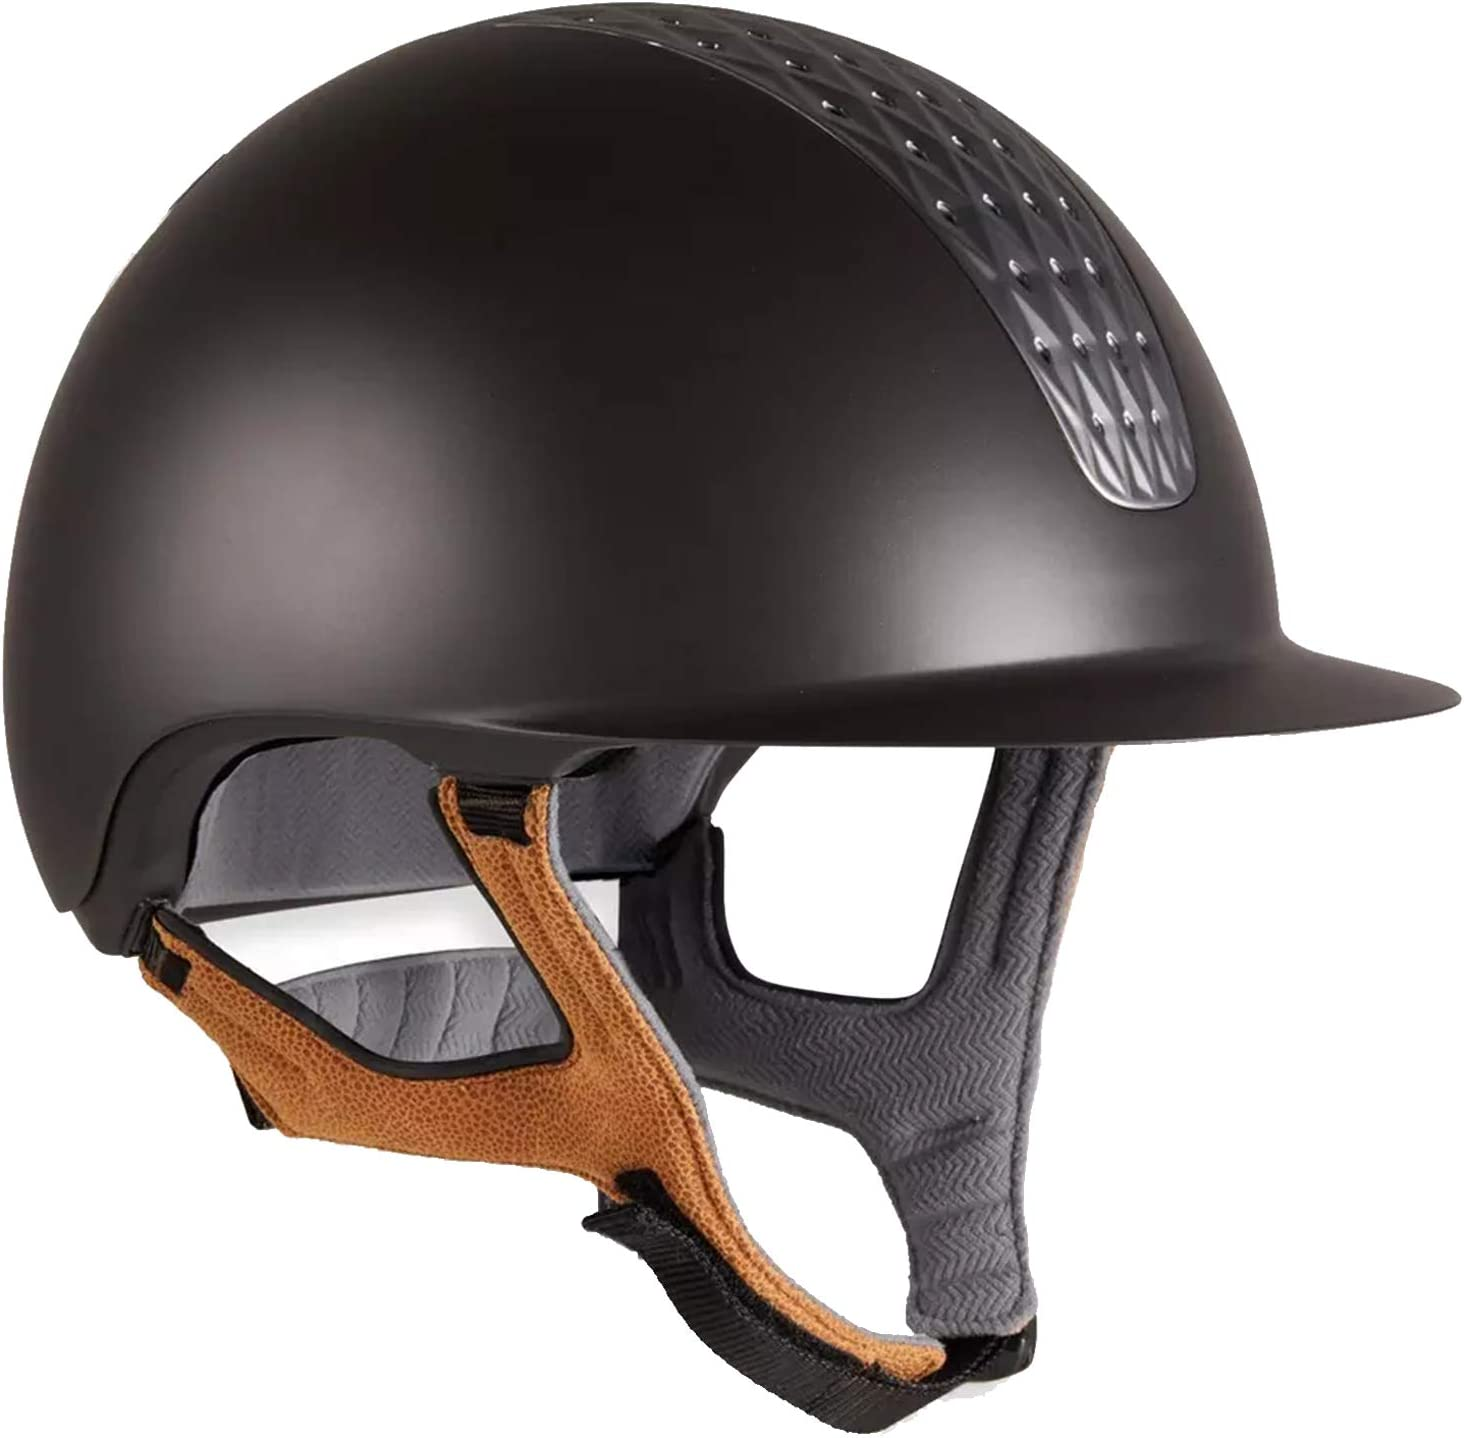 ZYJY Equestrian Riding Helmet Max 71% OFF for Men Women Strong and Pr Max 59% OFF ABS